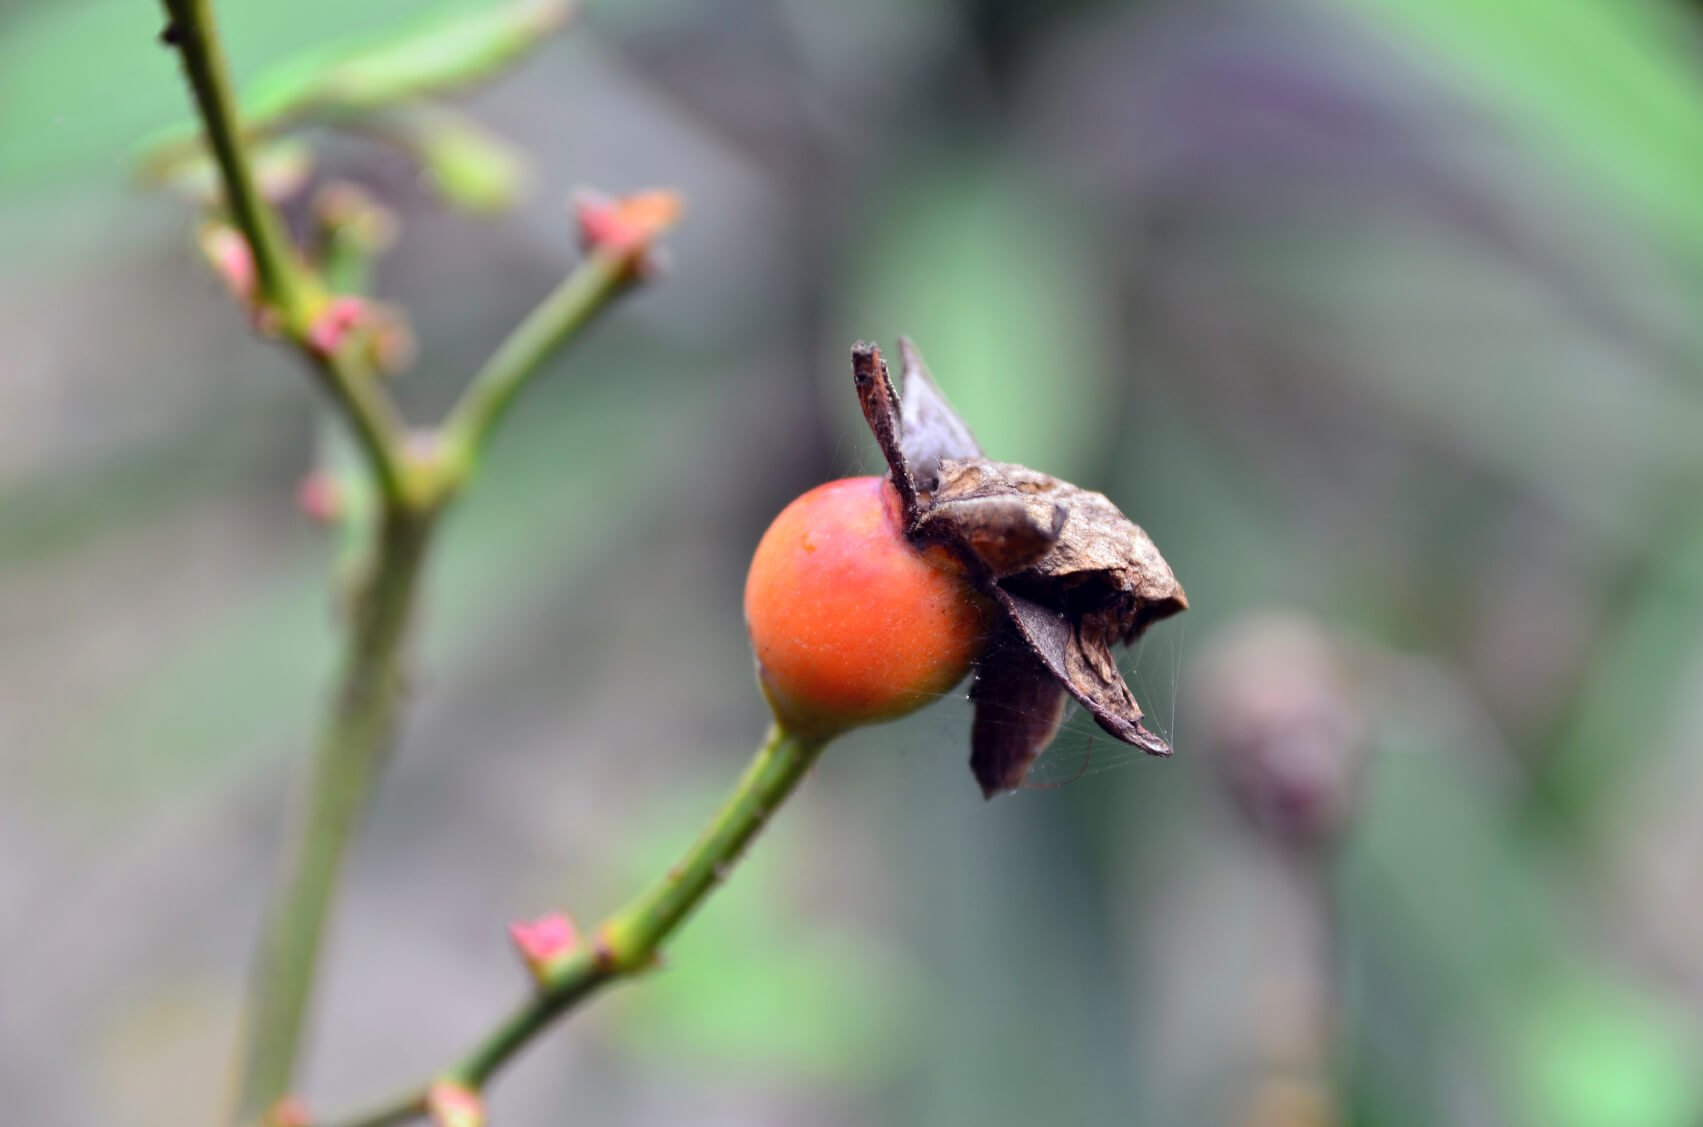 Perhaps explore growing wild roses and harvesting rose hips. These fruity morsels are great for making jam, and are packed with Vitamin C!